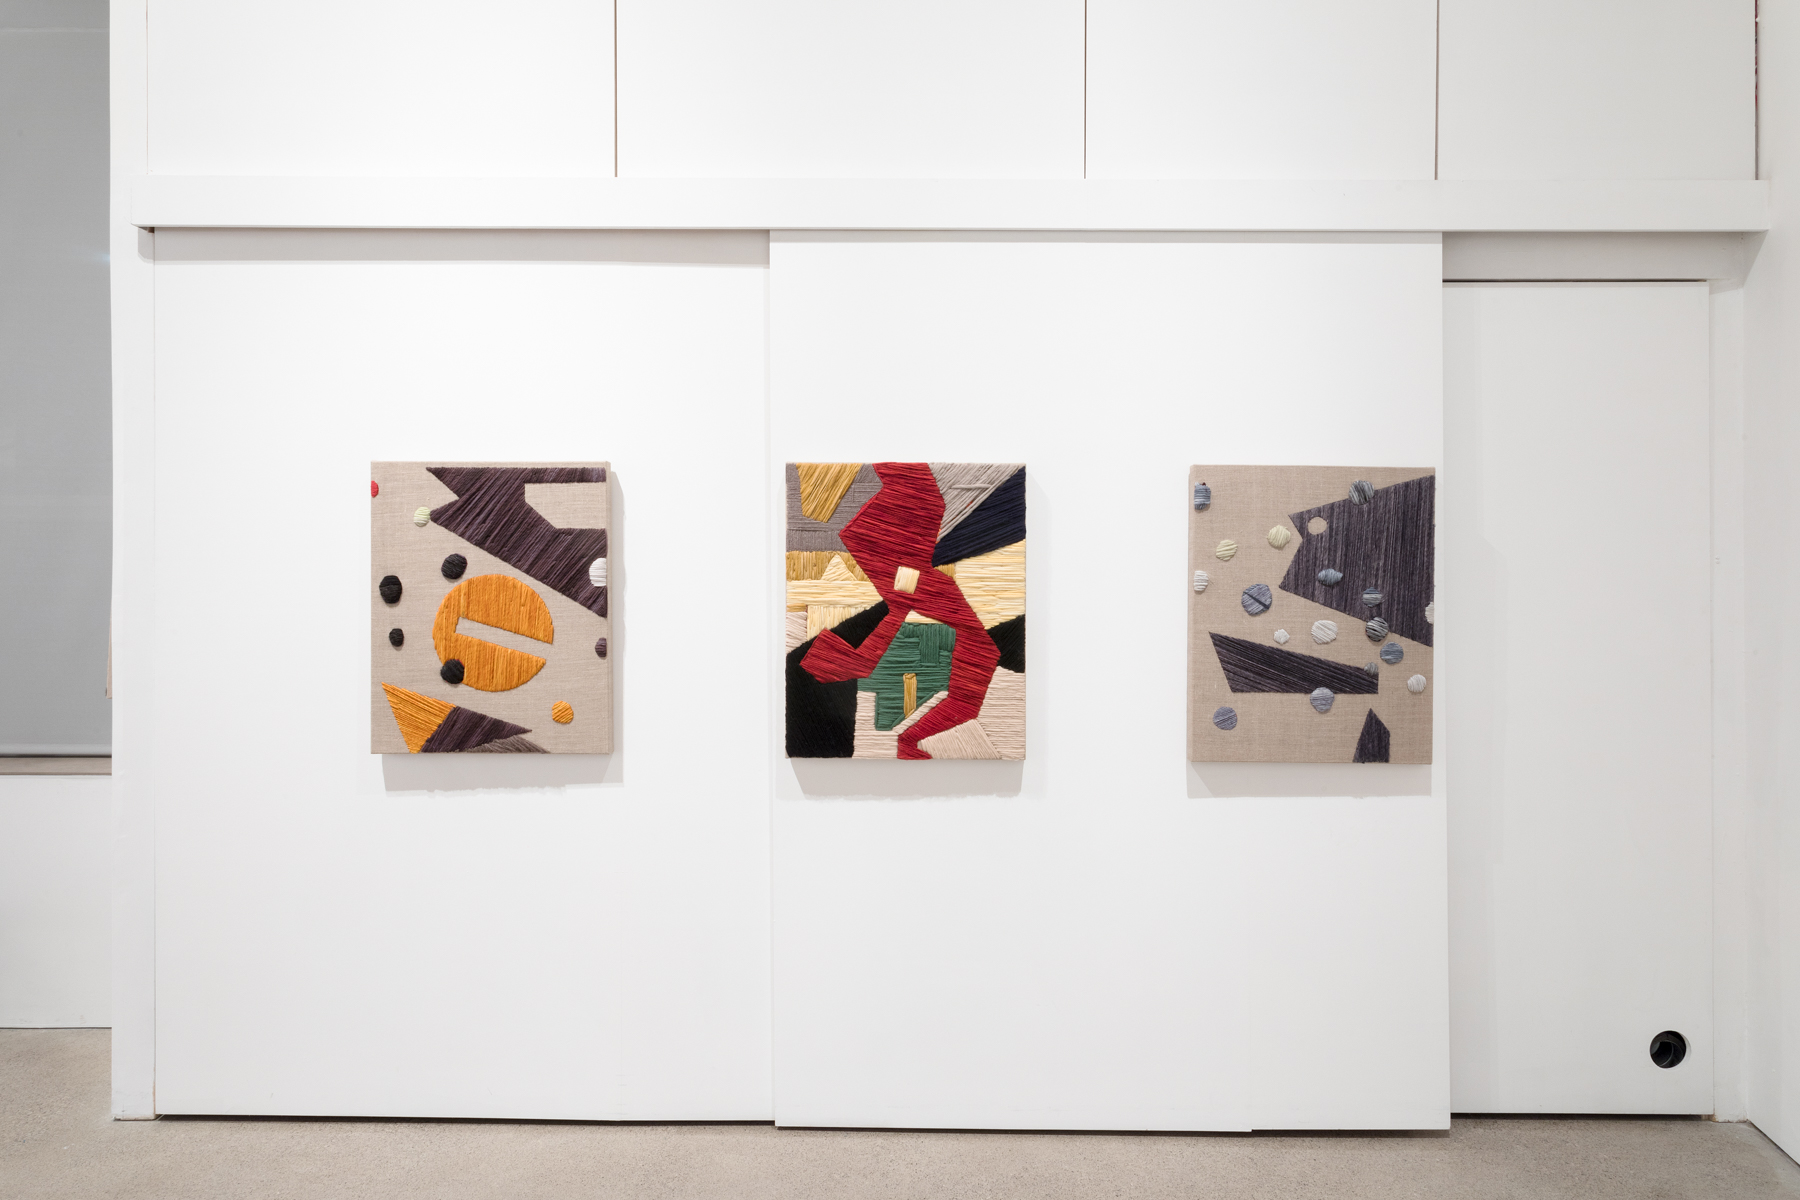 Installation view of System One at United Contemporary Gallery, Toronto, Canada, December 2018